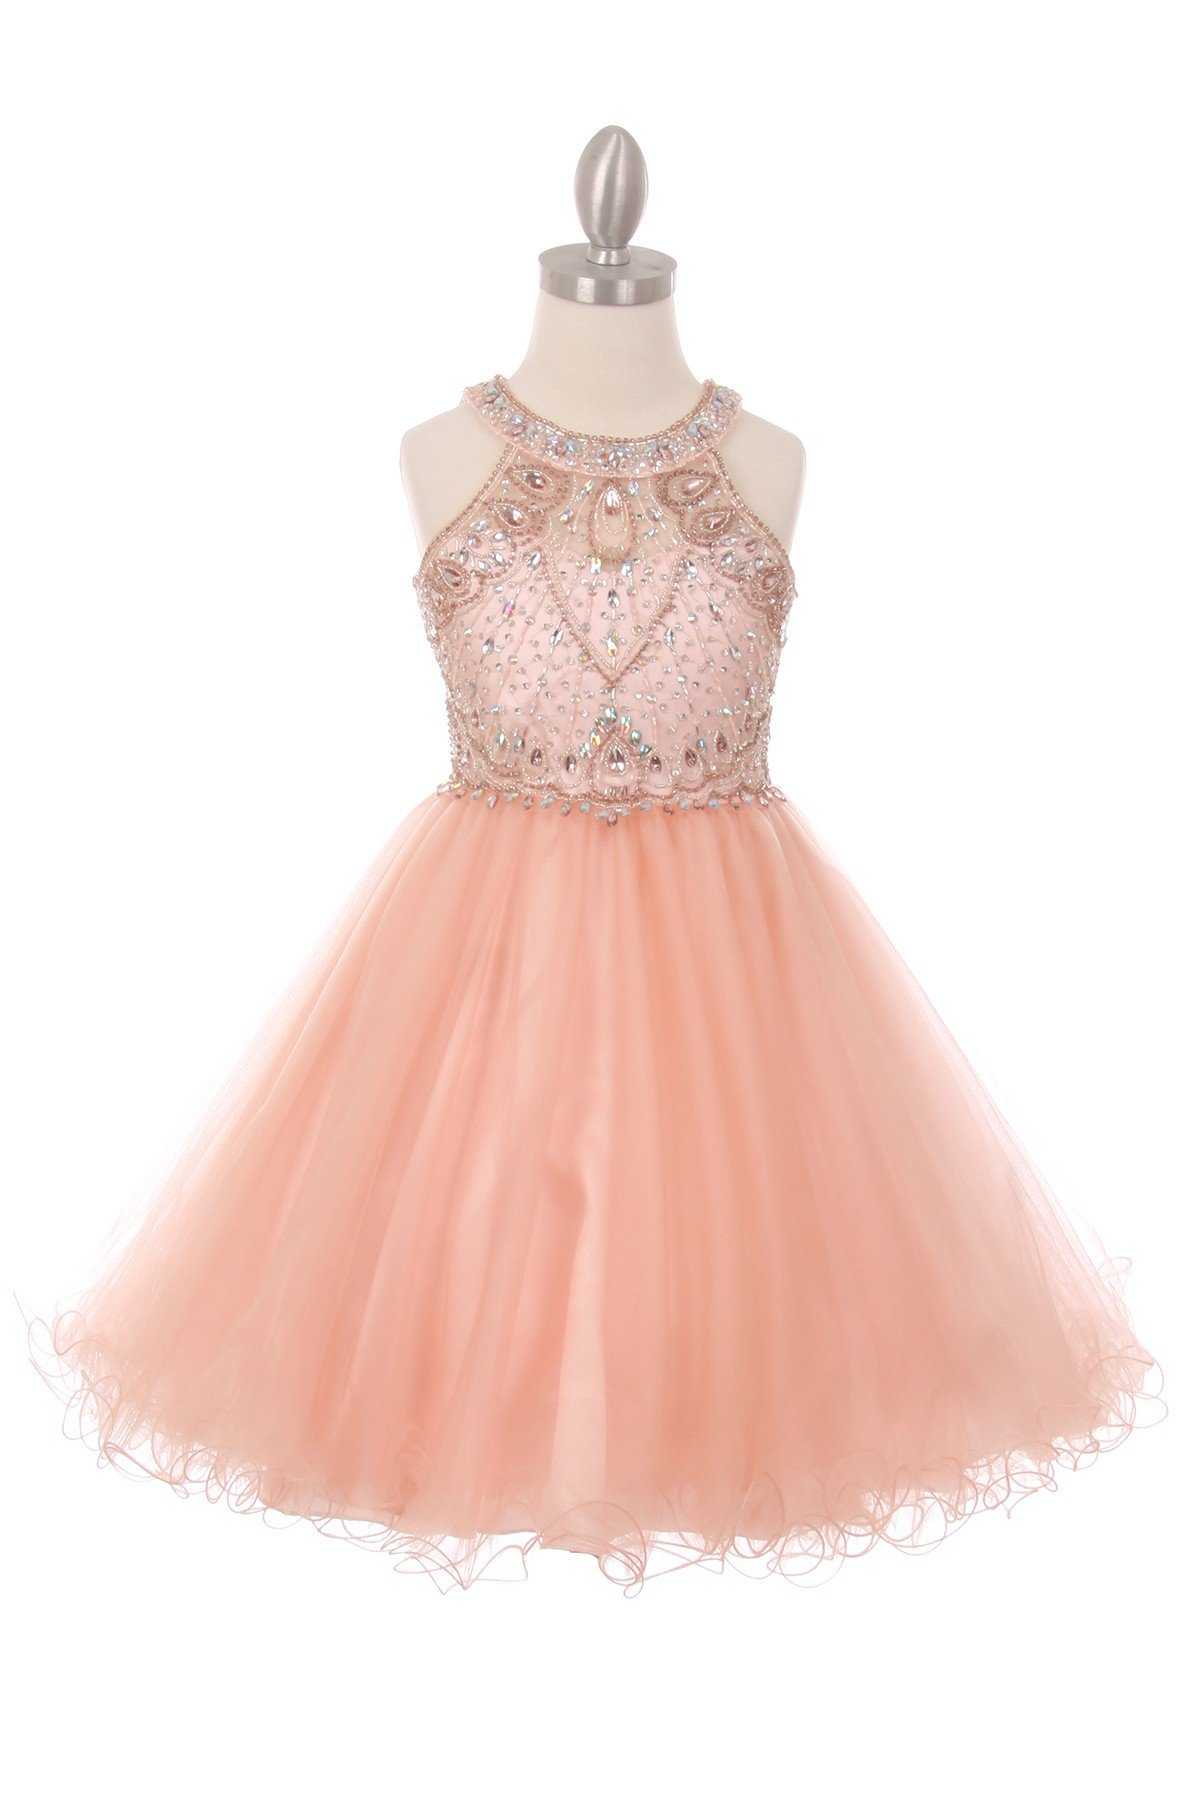 blush special occasion girl dresses